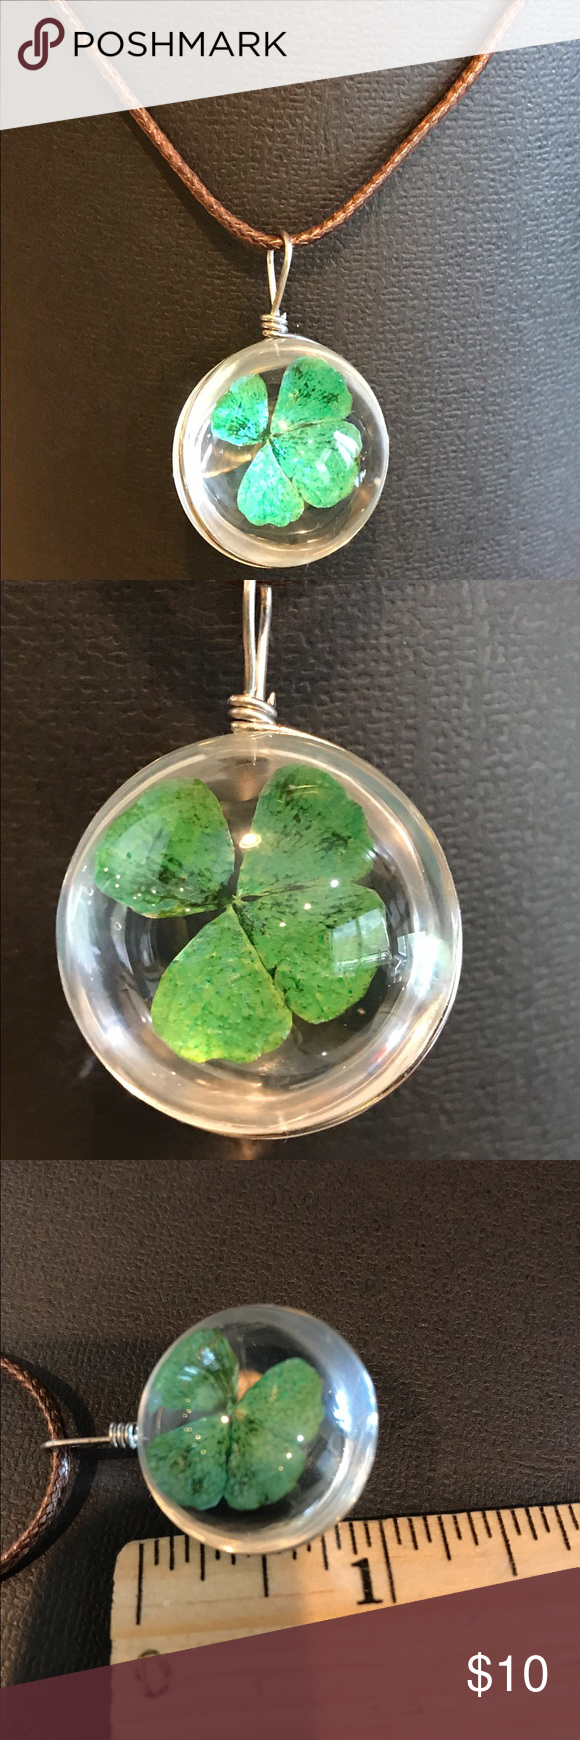 Green lucky shamrock necklace four leaf clover charm emerald green - Real Four Leaf Clover Necklace Pendant Nwt